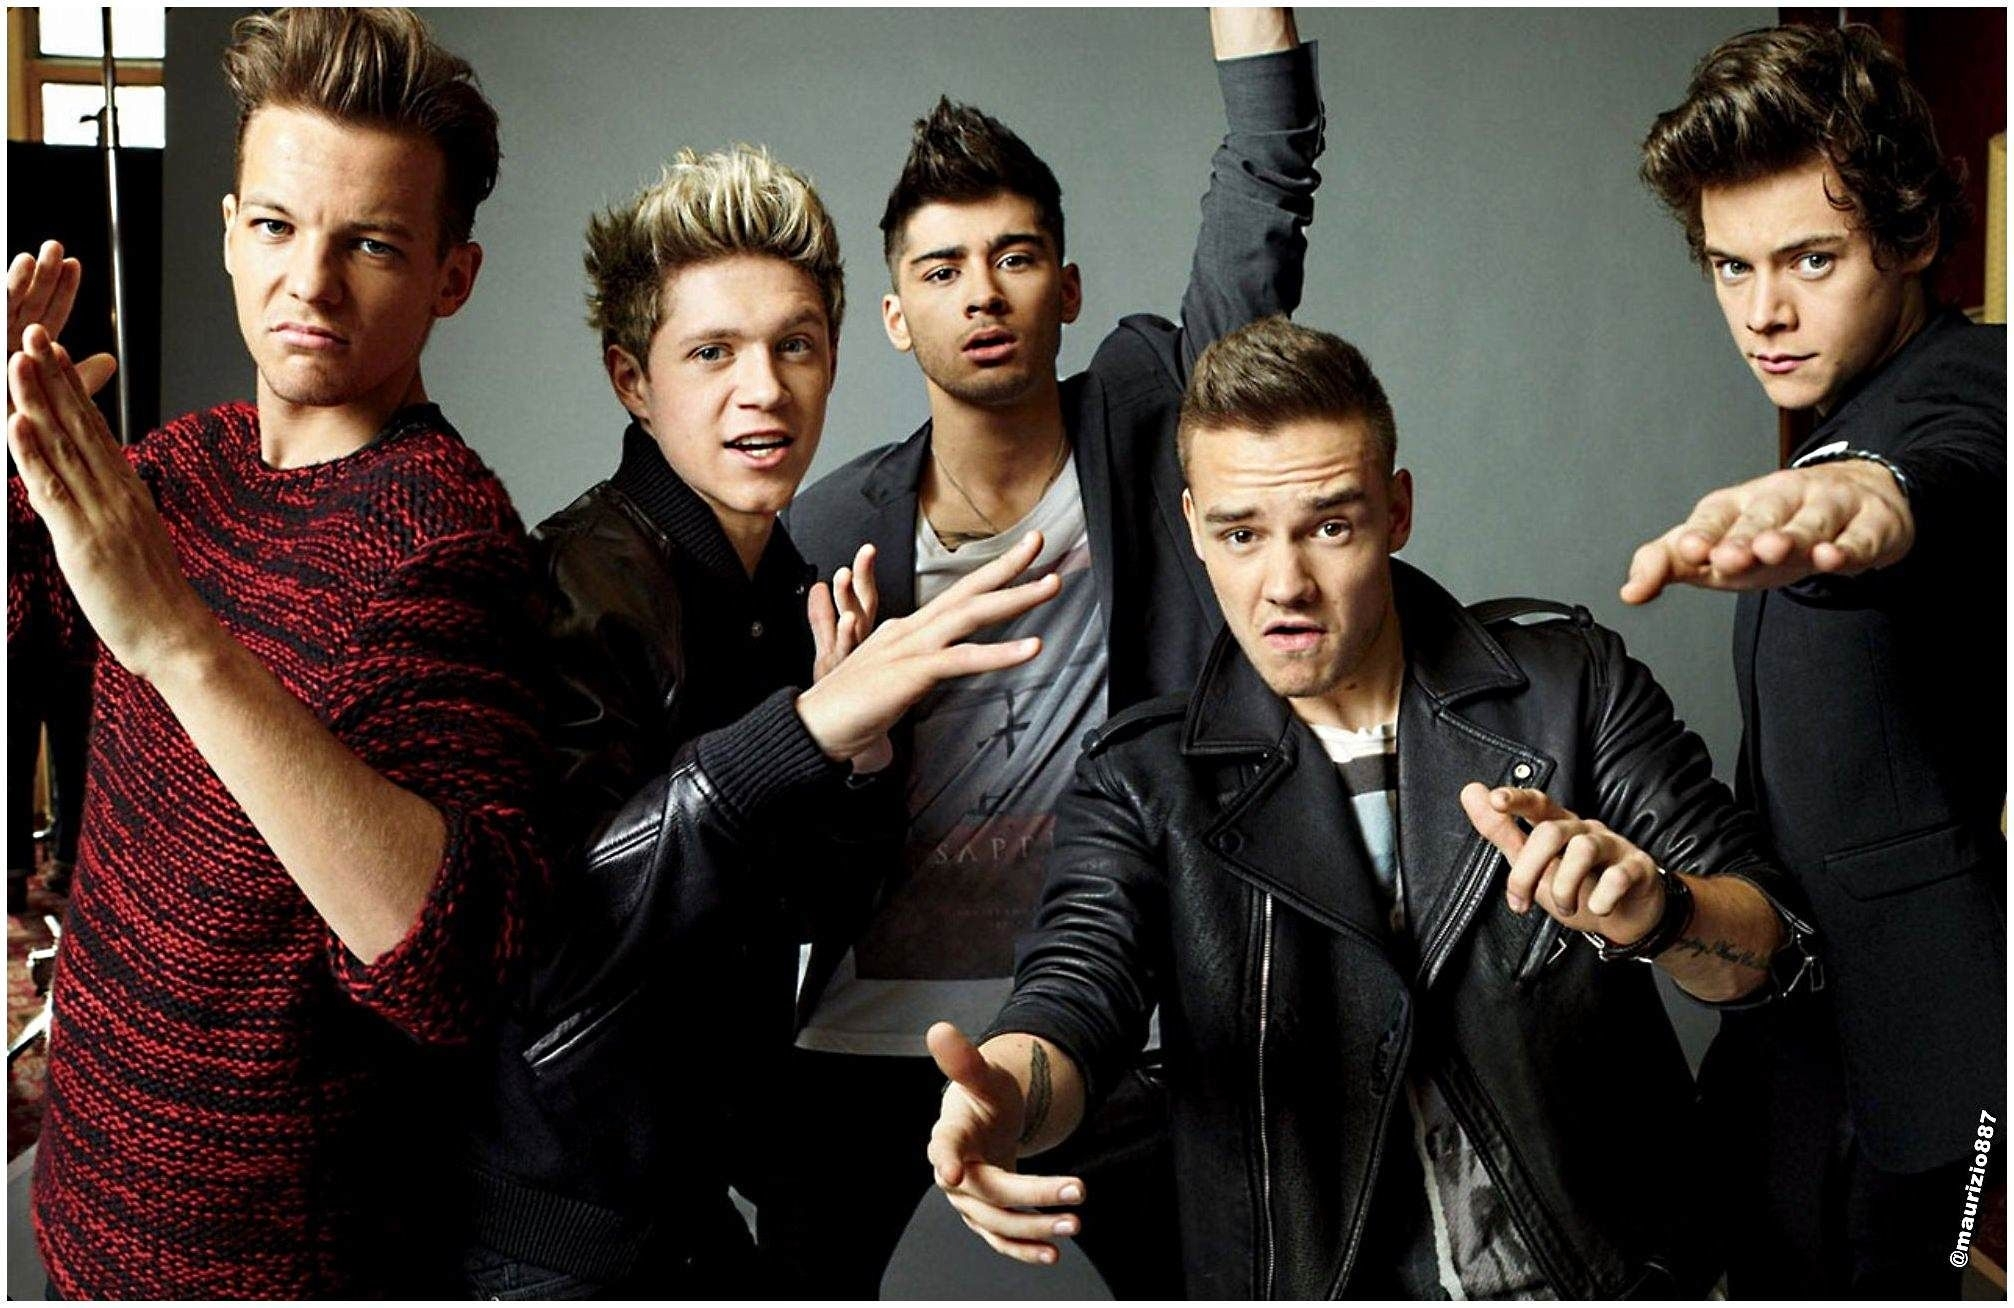 1920x1080px members of one direction wallpaper 2014 | #452818